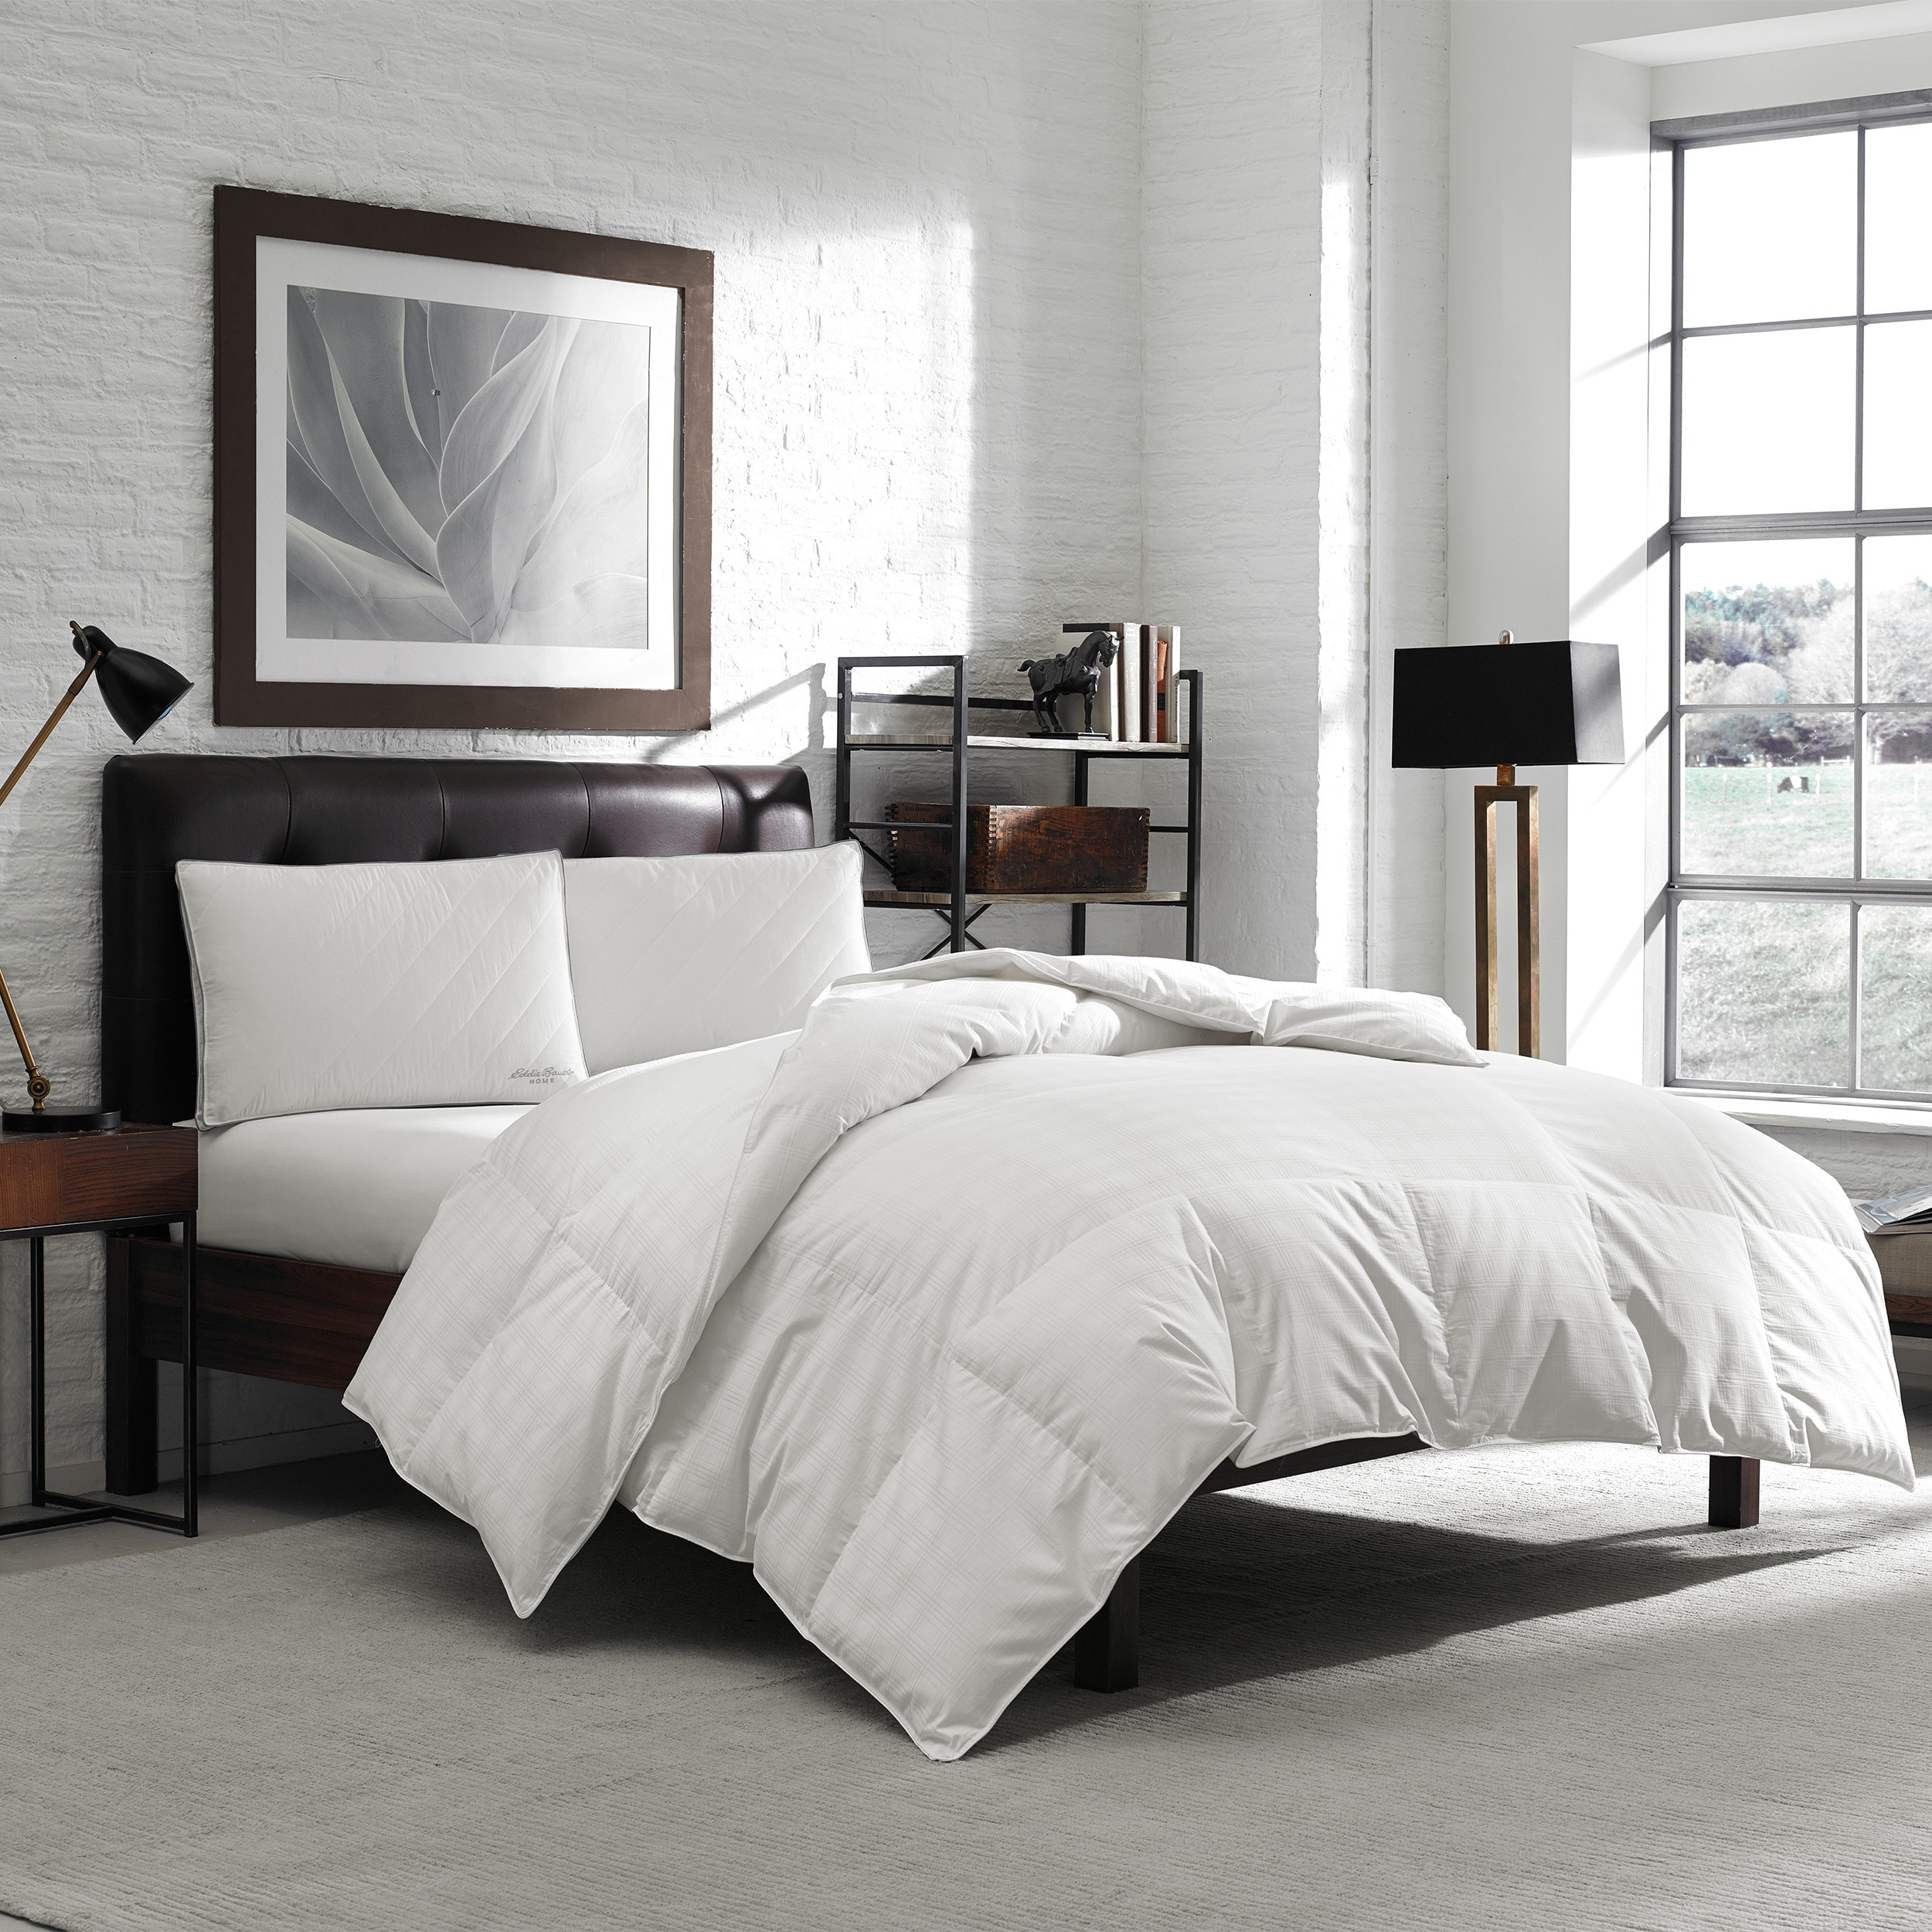 Super King Size 600 Thread Count Hypoallergenic Primaloft Luxury Down Alternative Oversized Comforter